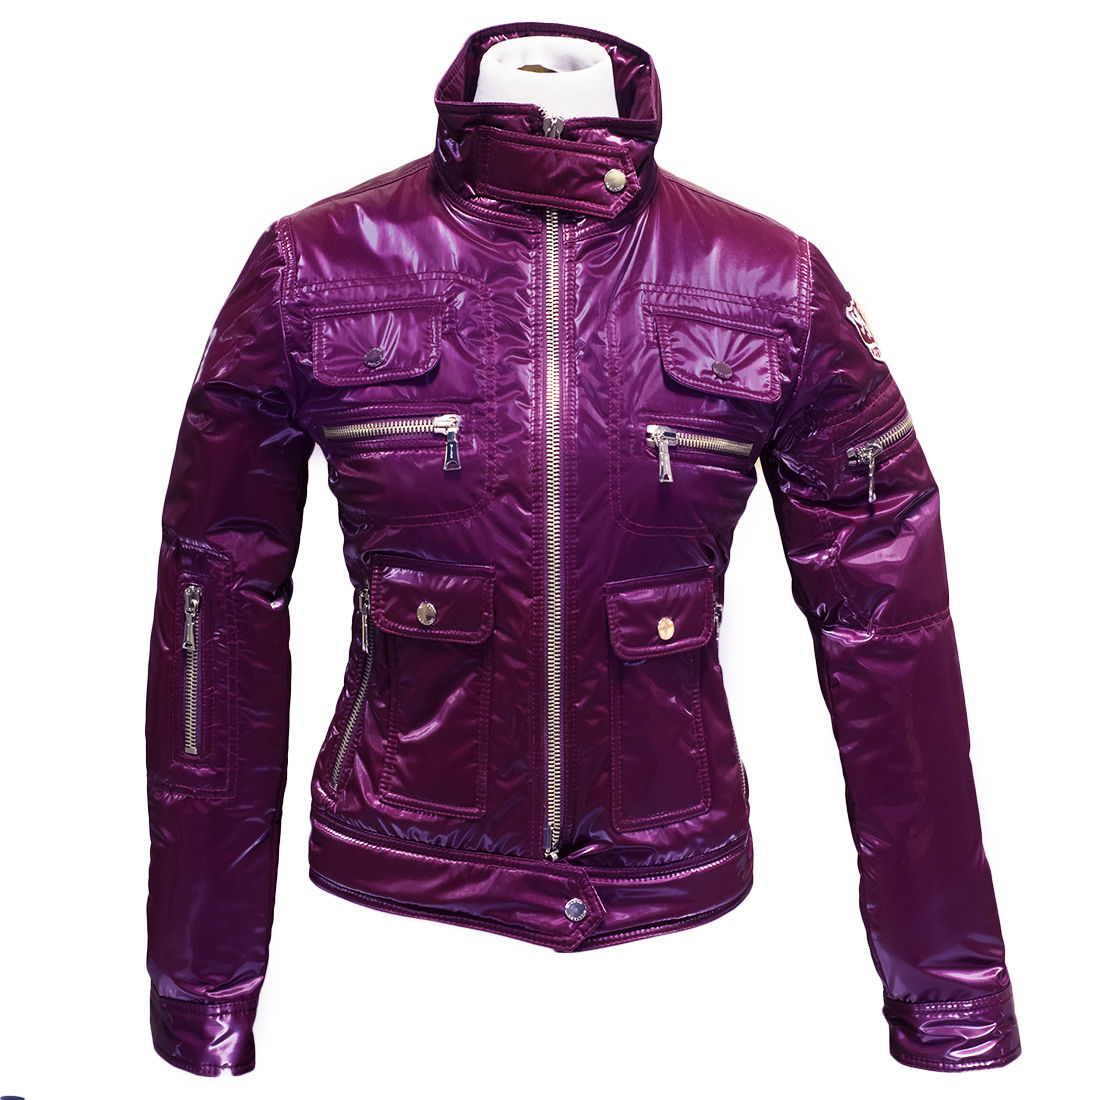 Aureka Cyclamino Magenta Padded Women's Cropped Jacket